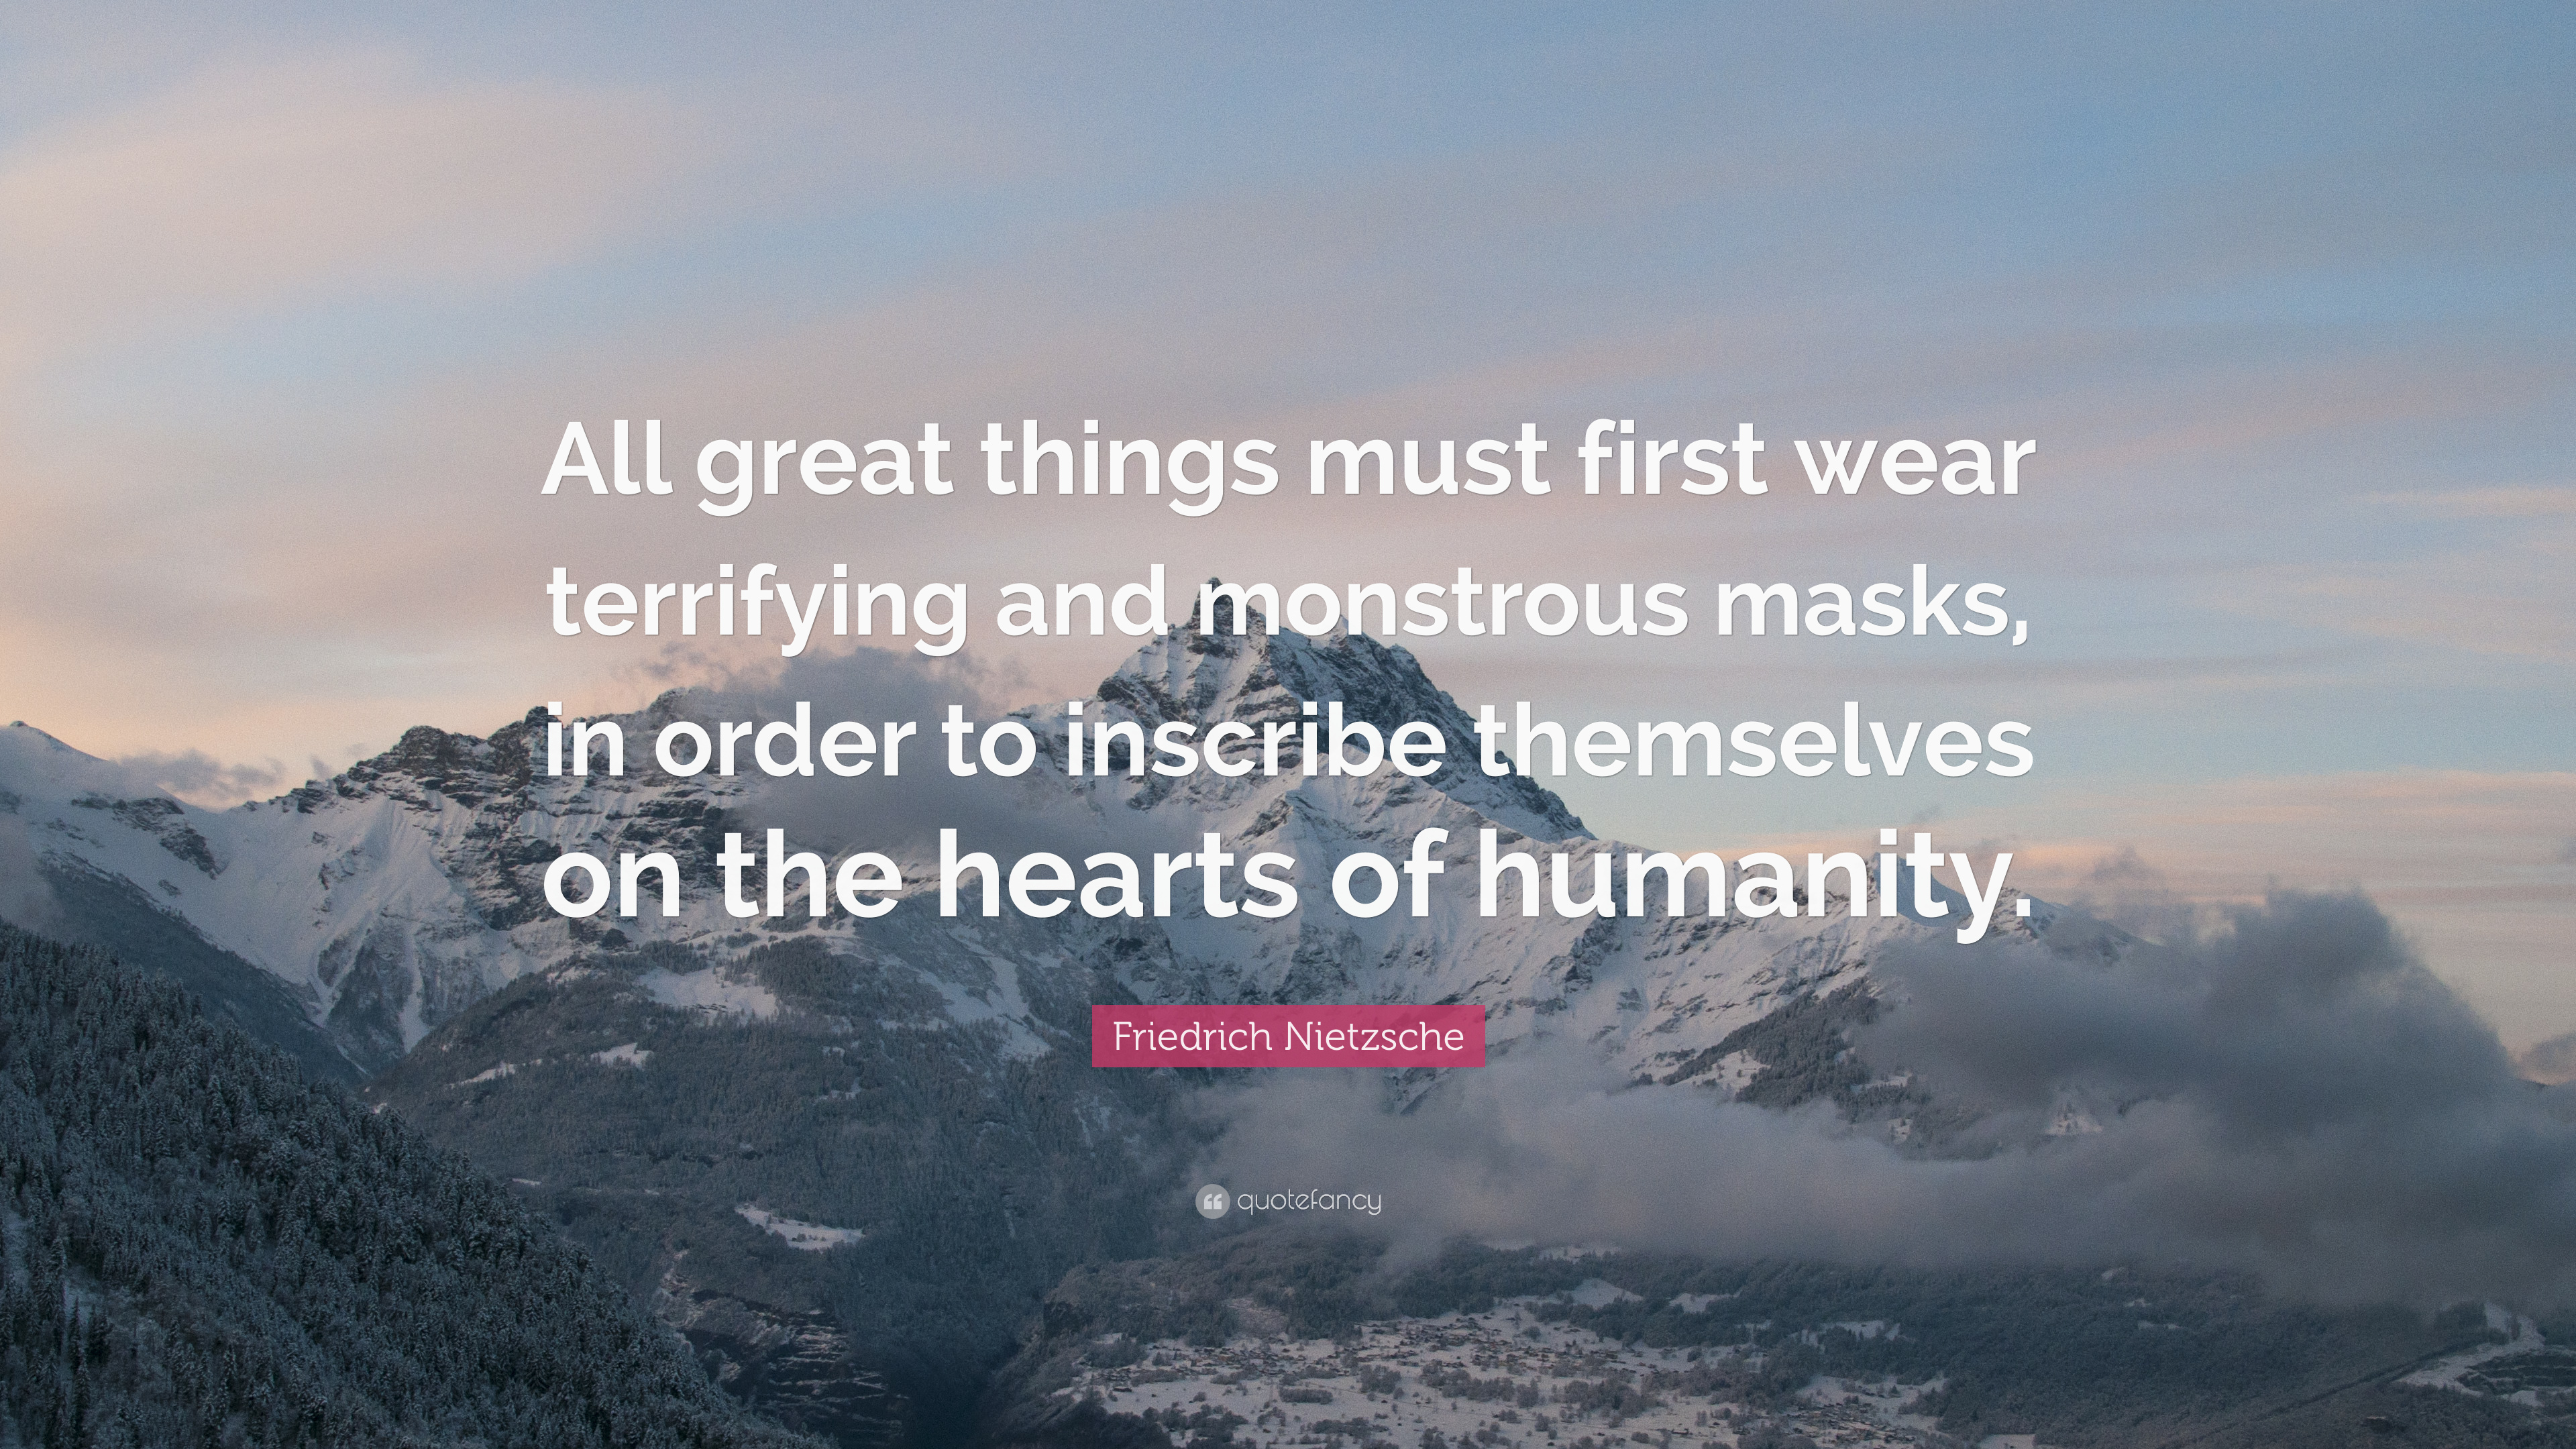 nietzsche first essay quotes Is a central theme of friedrich nietzsche's works, in particular the first essay of on the genealogy of morality nietzsche argued that there were two f.